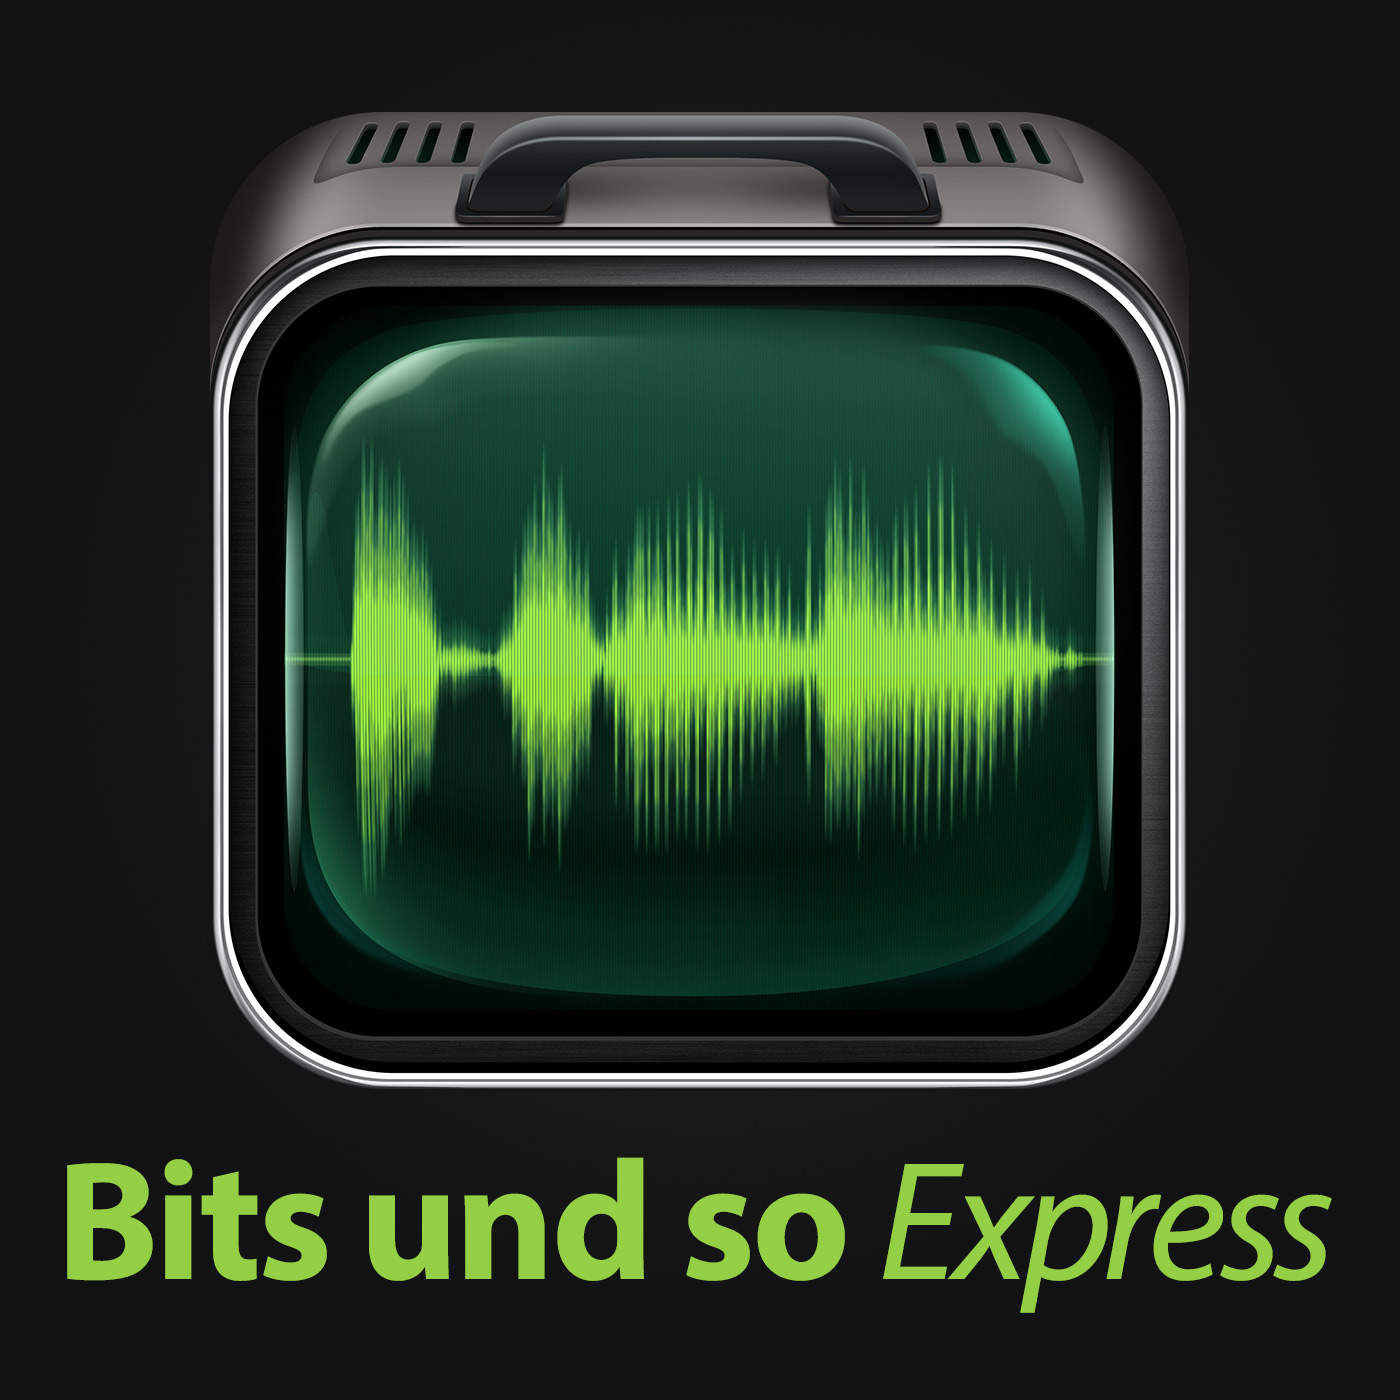 Bits und so Express (Video)